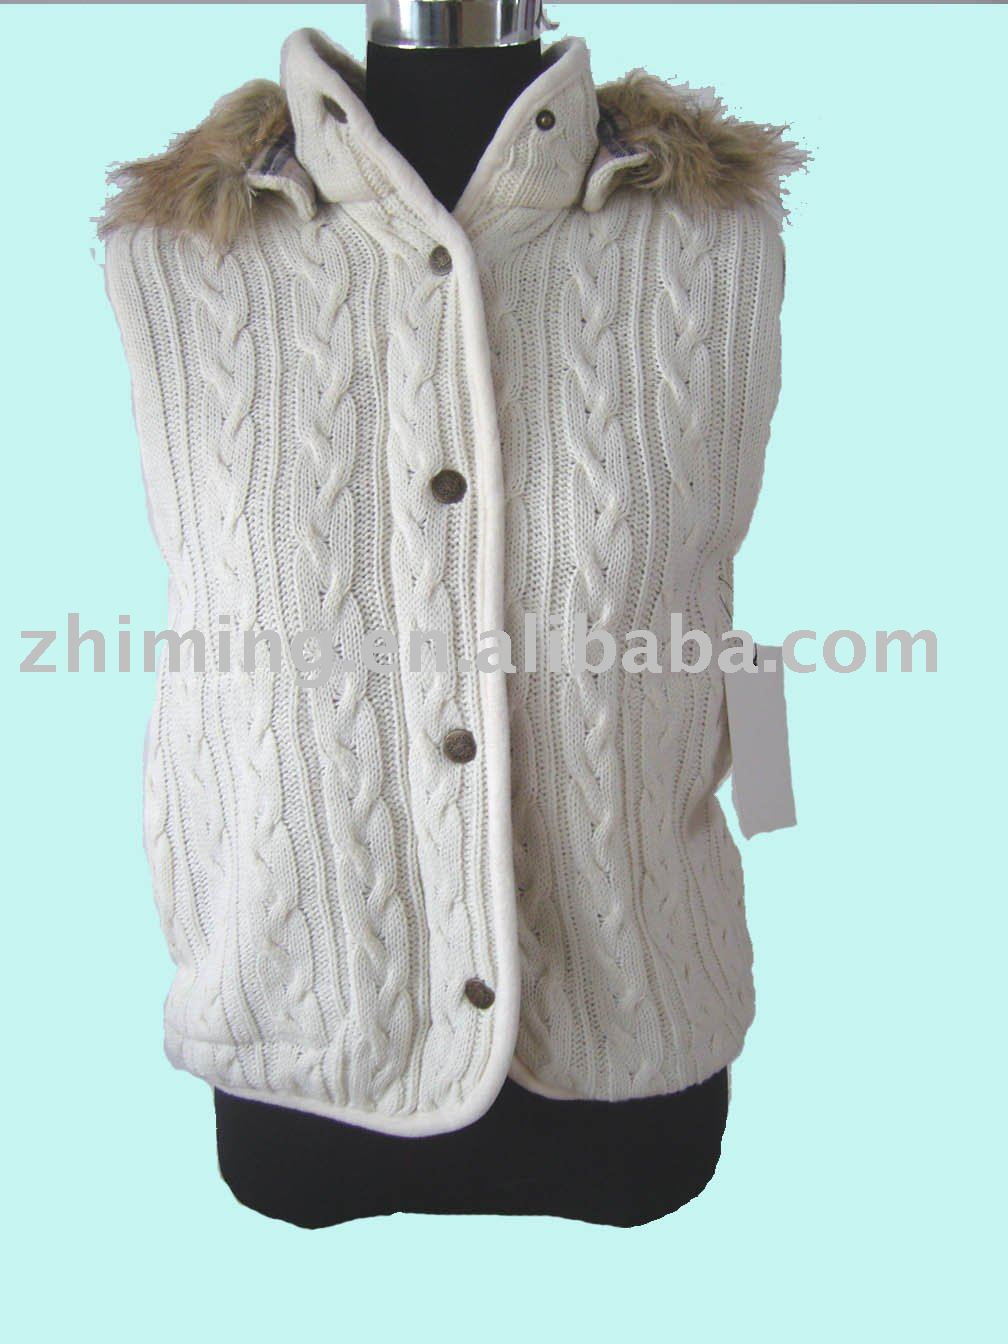 Lady Cable Knit Hoodie Sleeveless Cardigan